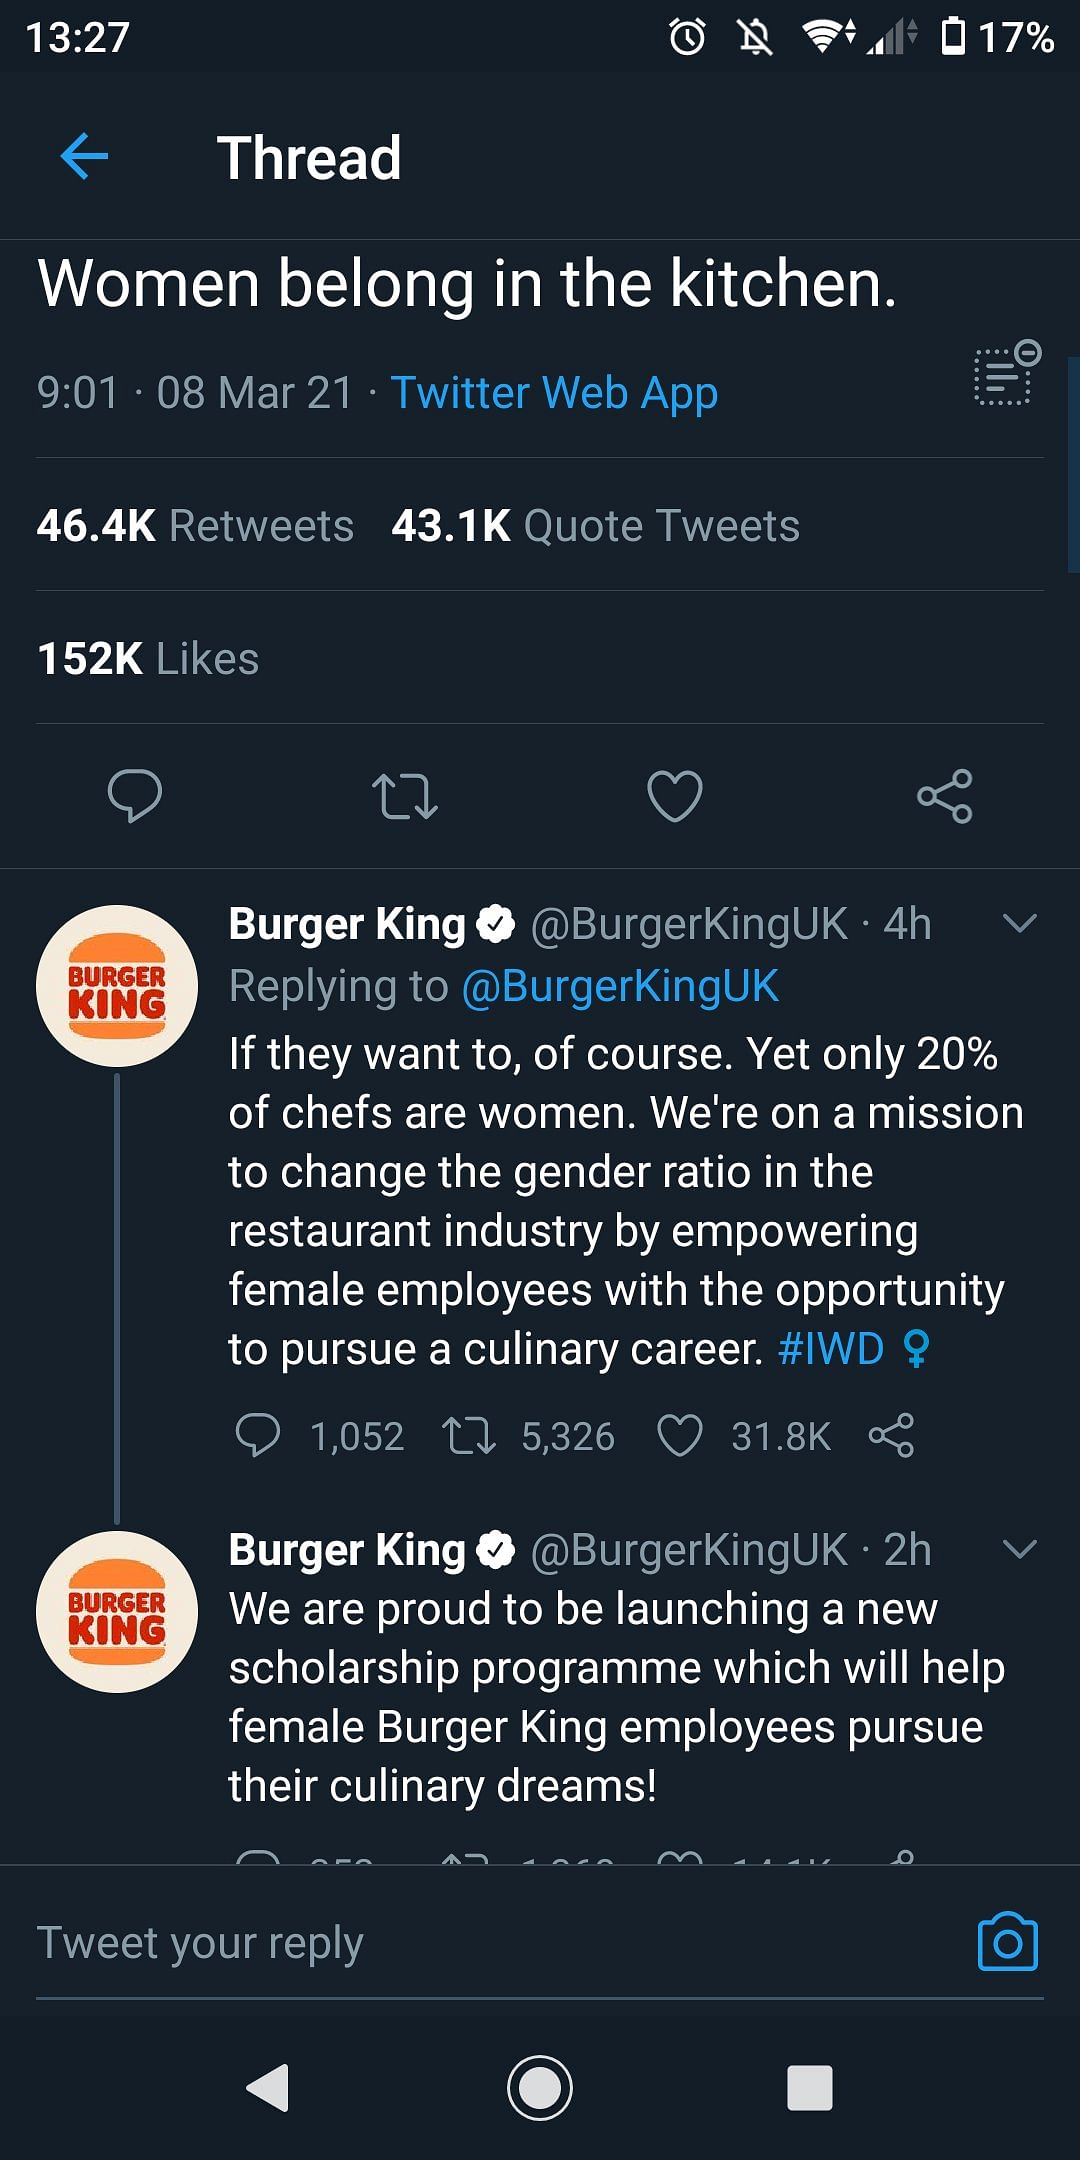 Burger King UK apologises after its Women's Day tweet is dubbed sexist and tone-deaf